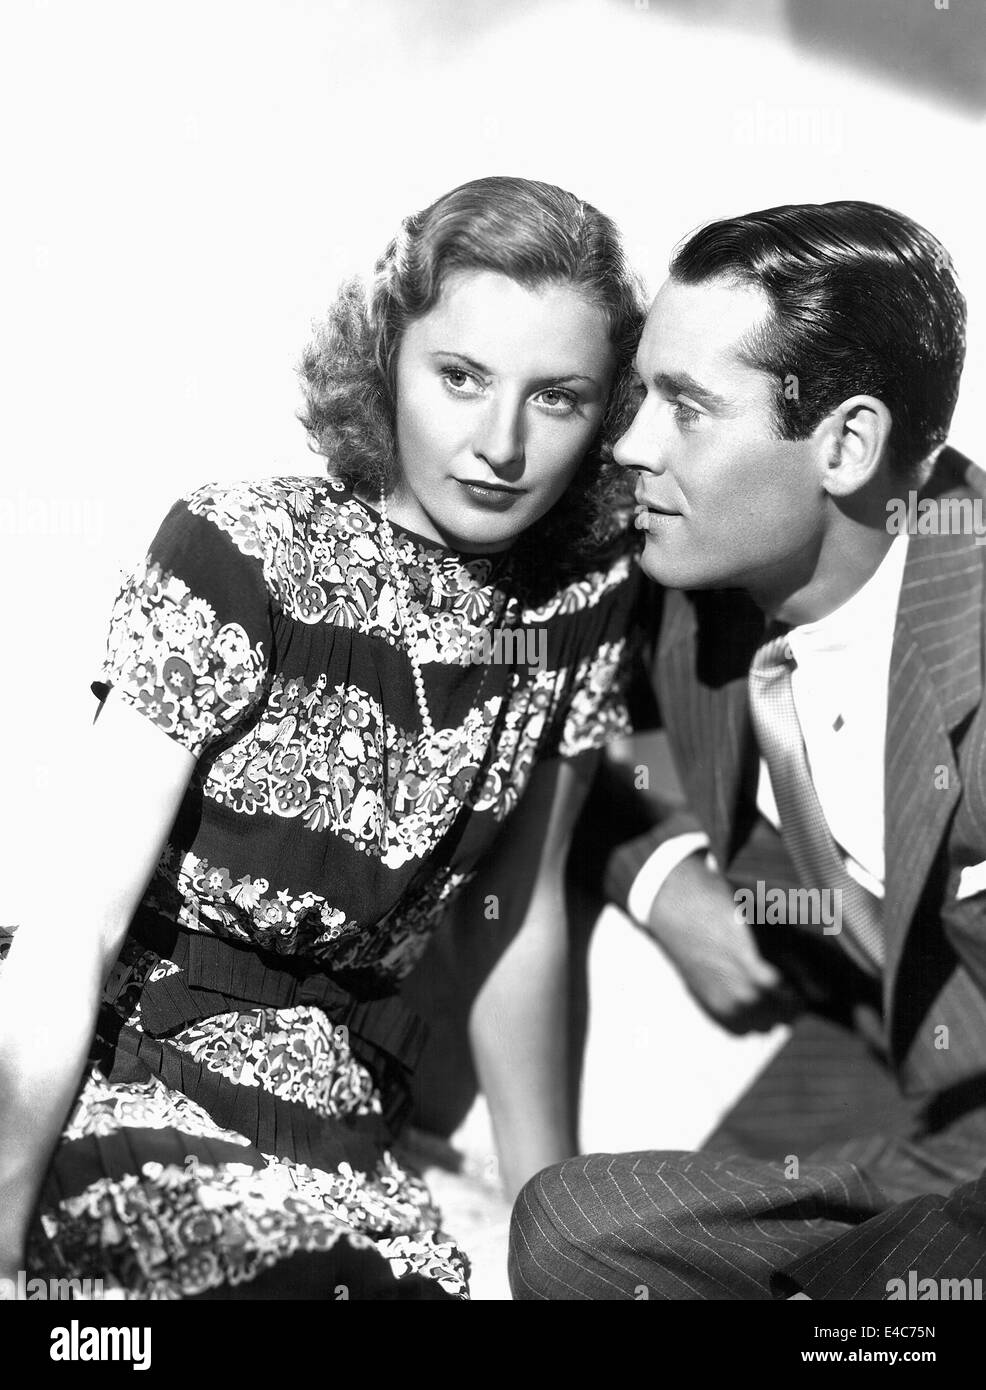 Barbara Stanwyck, Henry Fonda, on-set of the Film, 'The Mad Miss Manton', 1938 - Stock Image